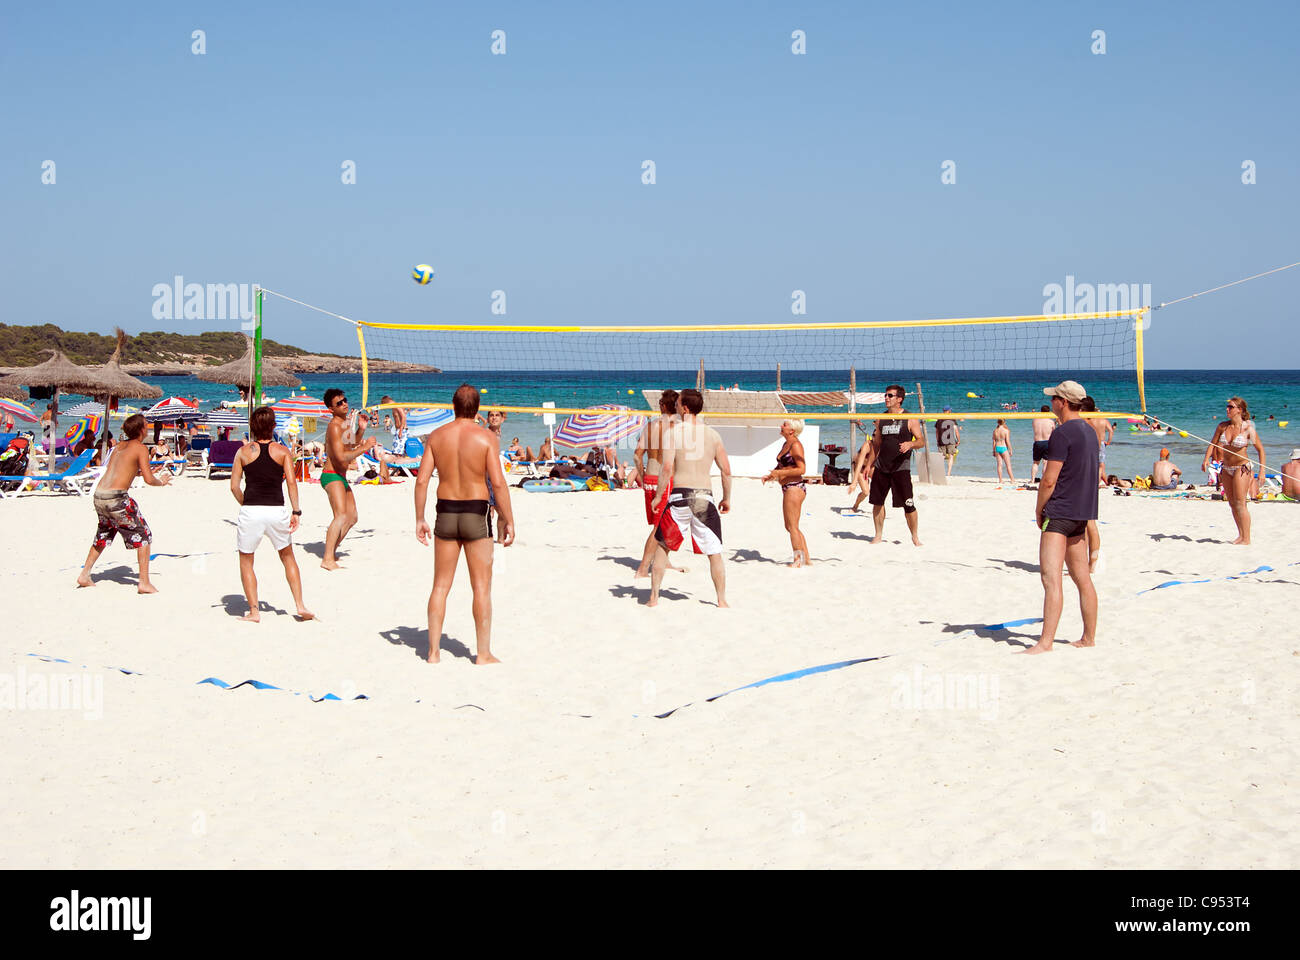 People playing beach volleyball in Sa Coma, Mallorca, Spain - Stock Image